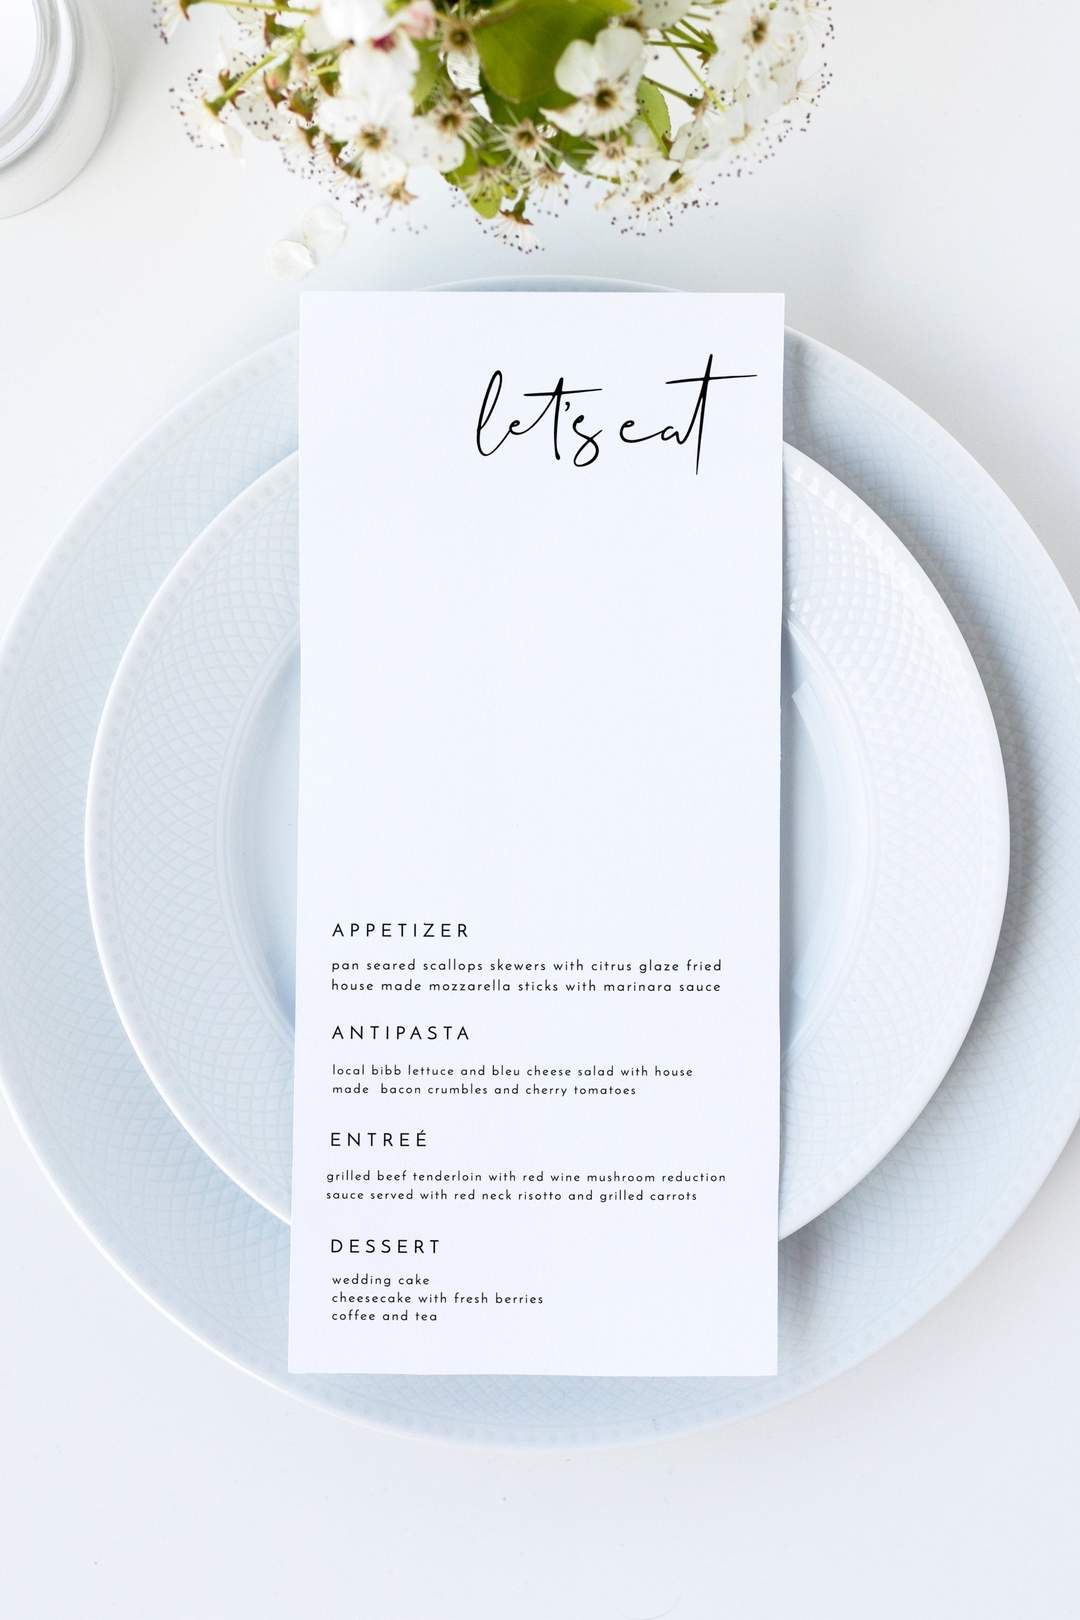 Adella - Modern Minimalist Wedding Menu Template #weddingmenutemplate